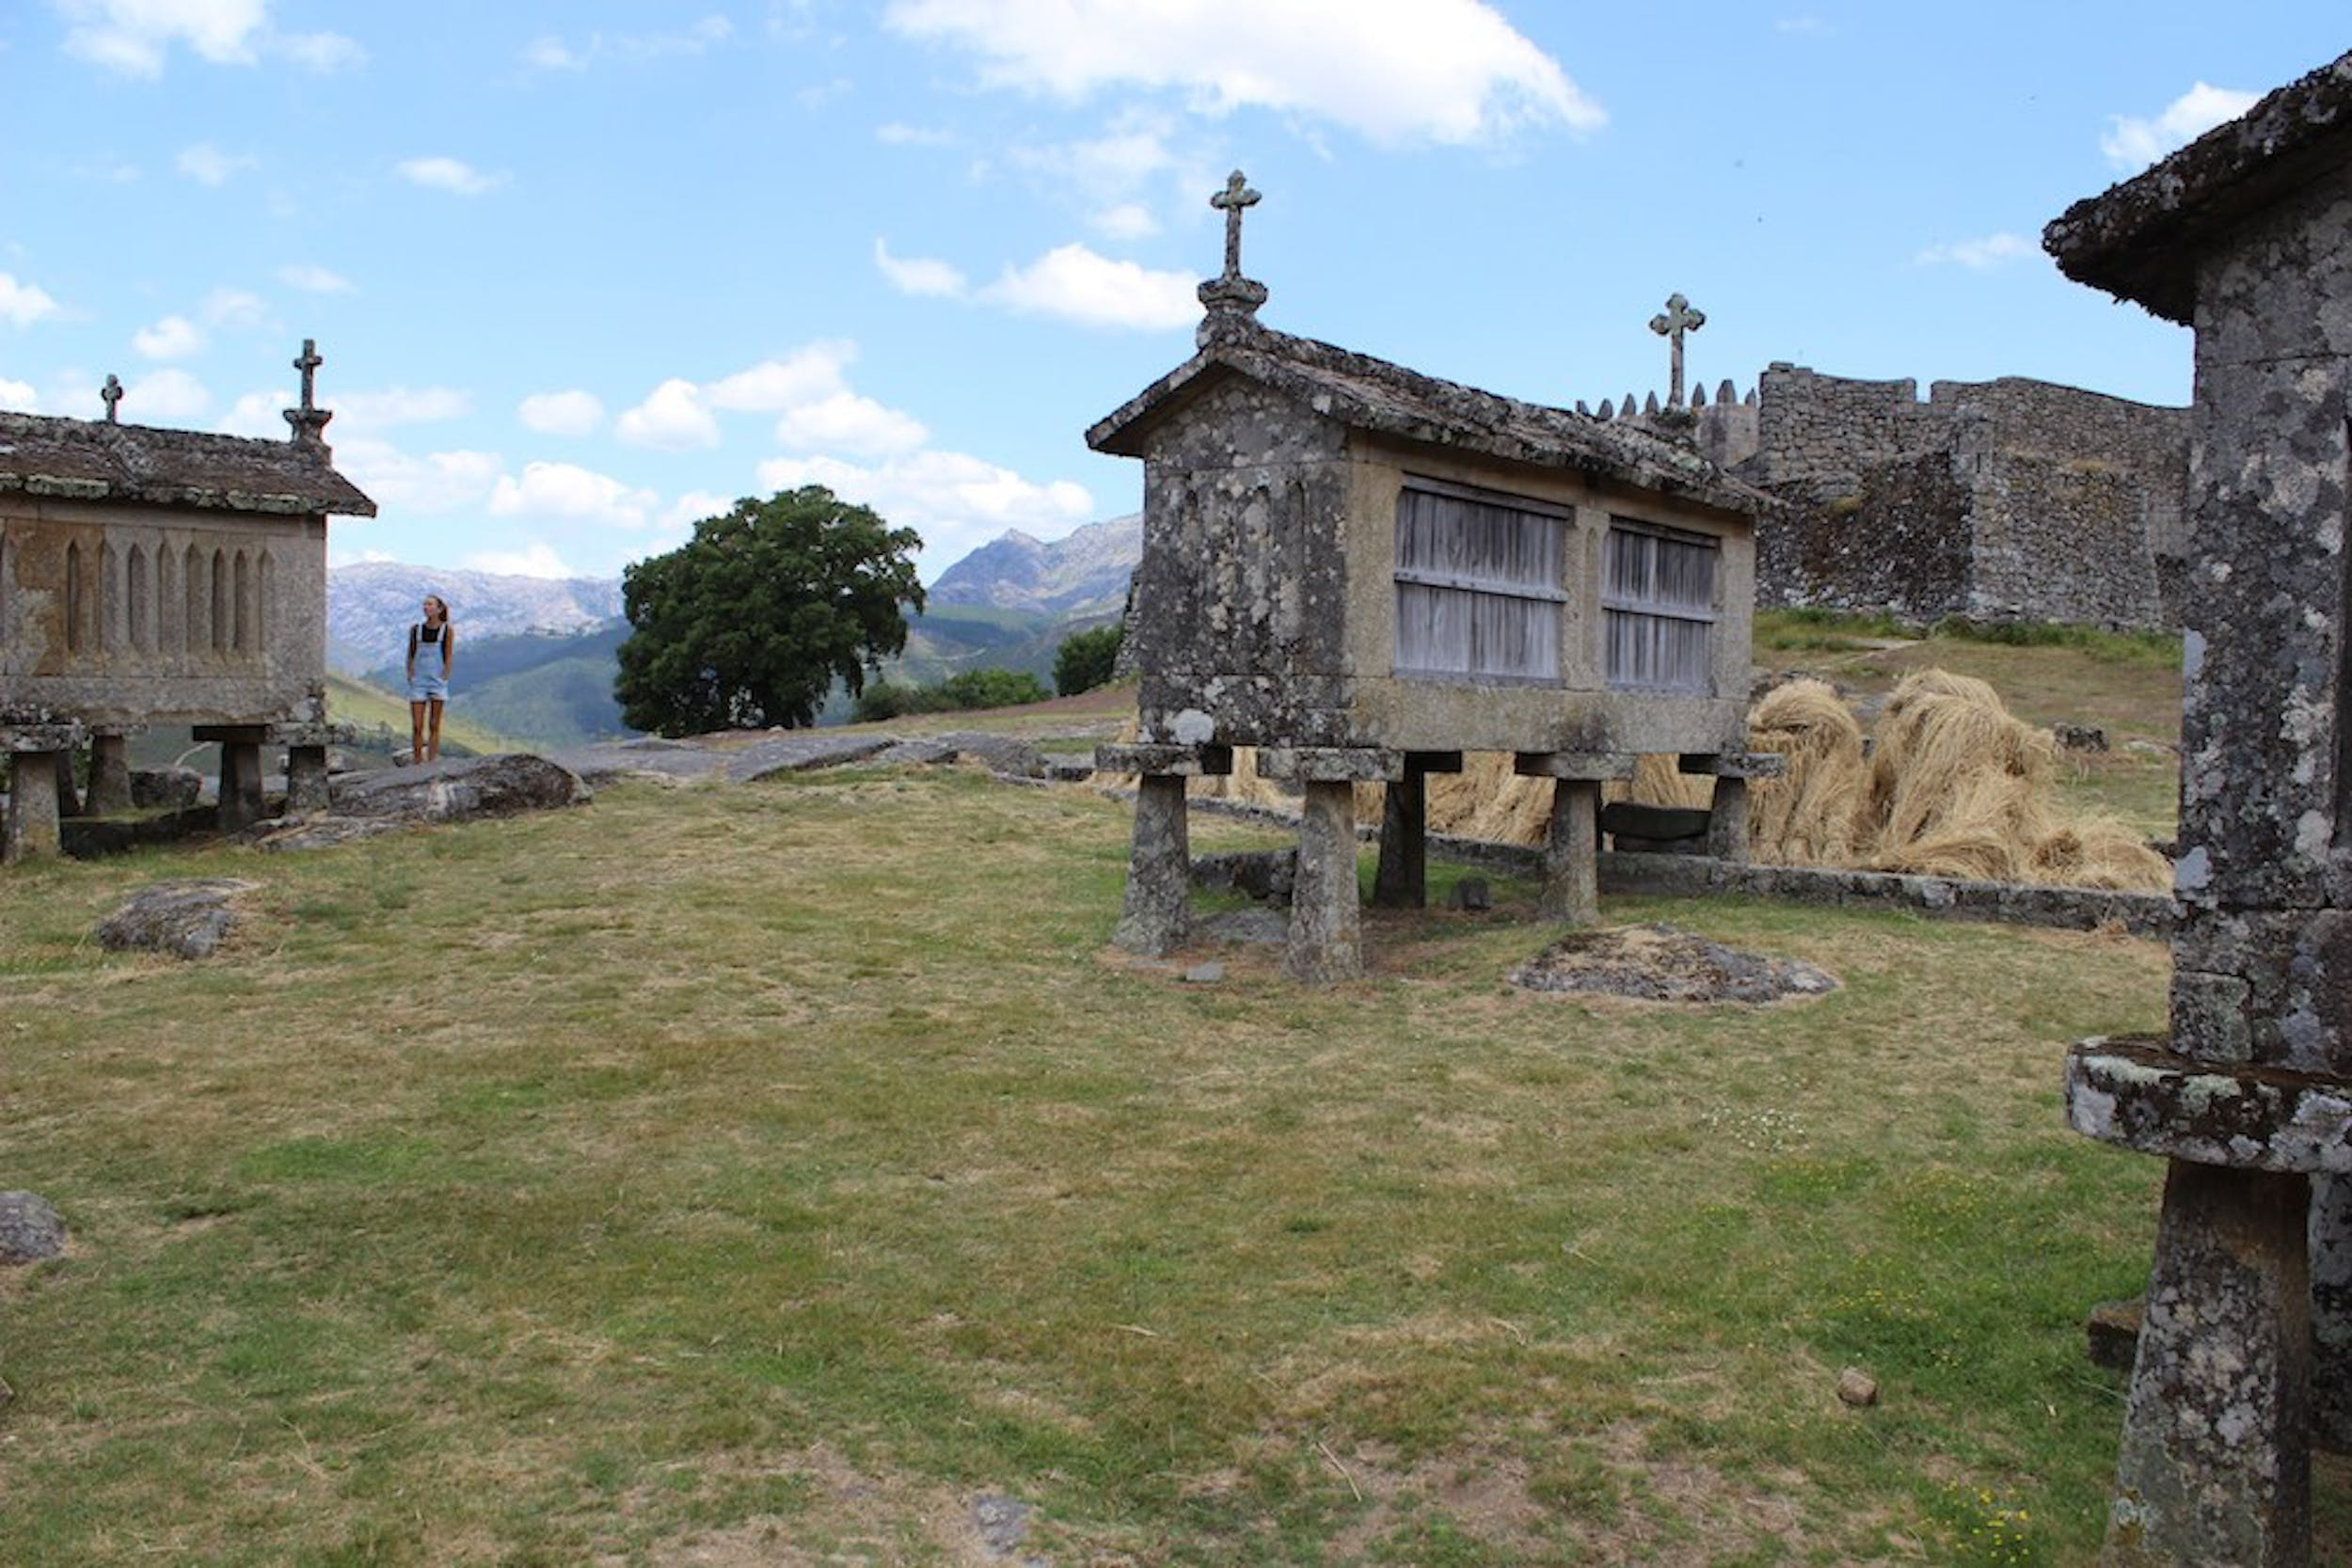 Village of Soajo with its monumental granaries.